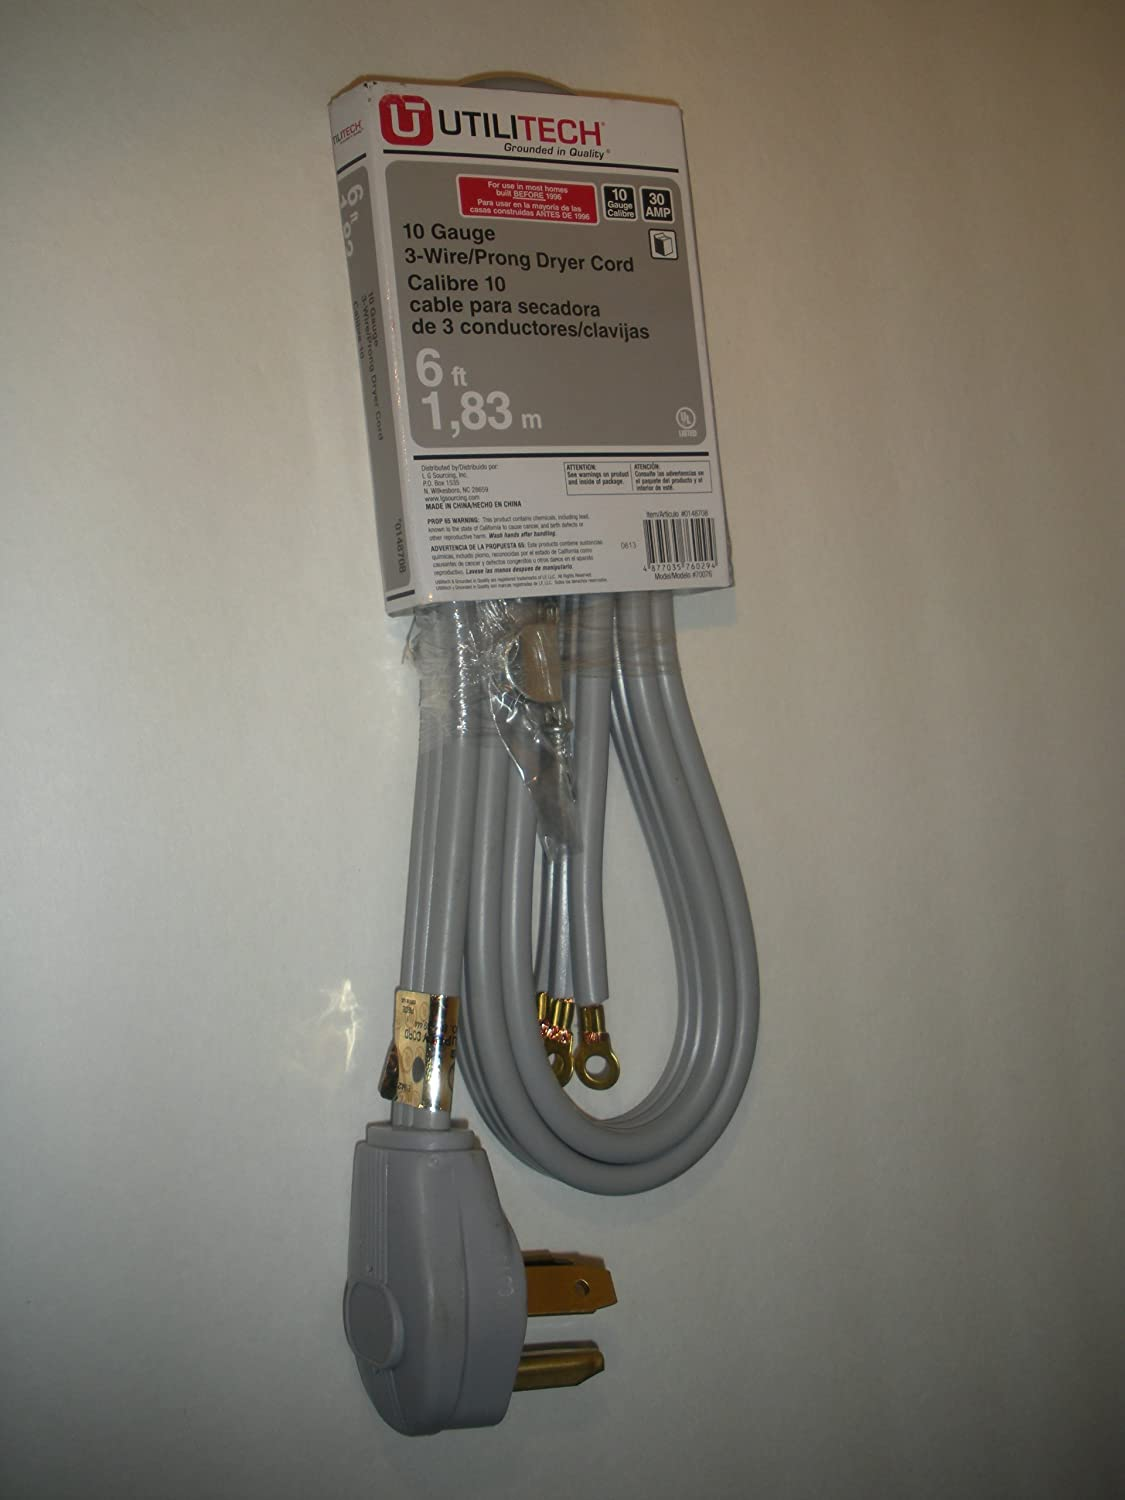 Amazon com : UtiliTech 3-Wire/Prong Dryer Cord : Everything Else